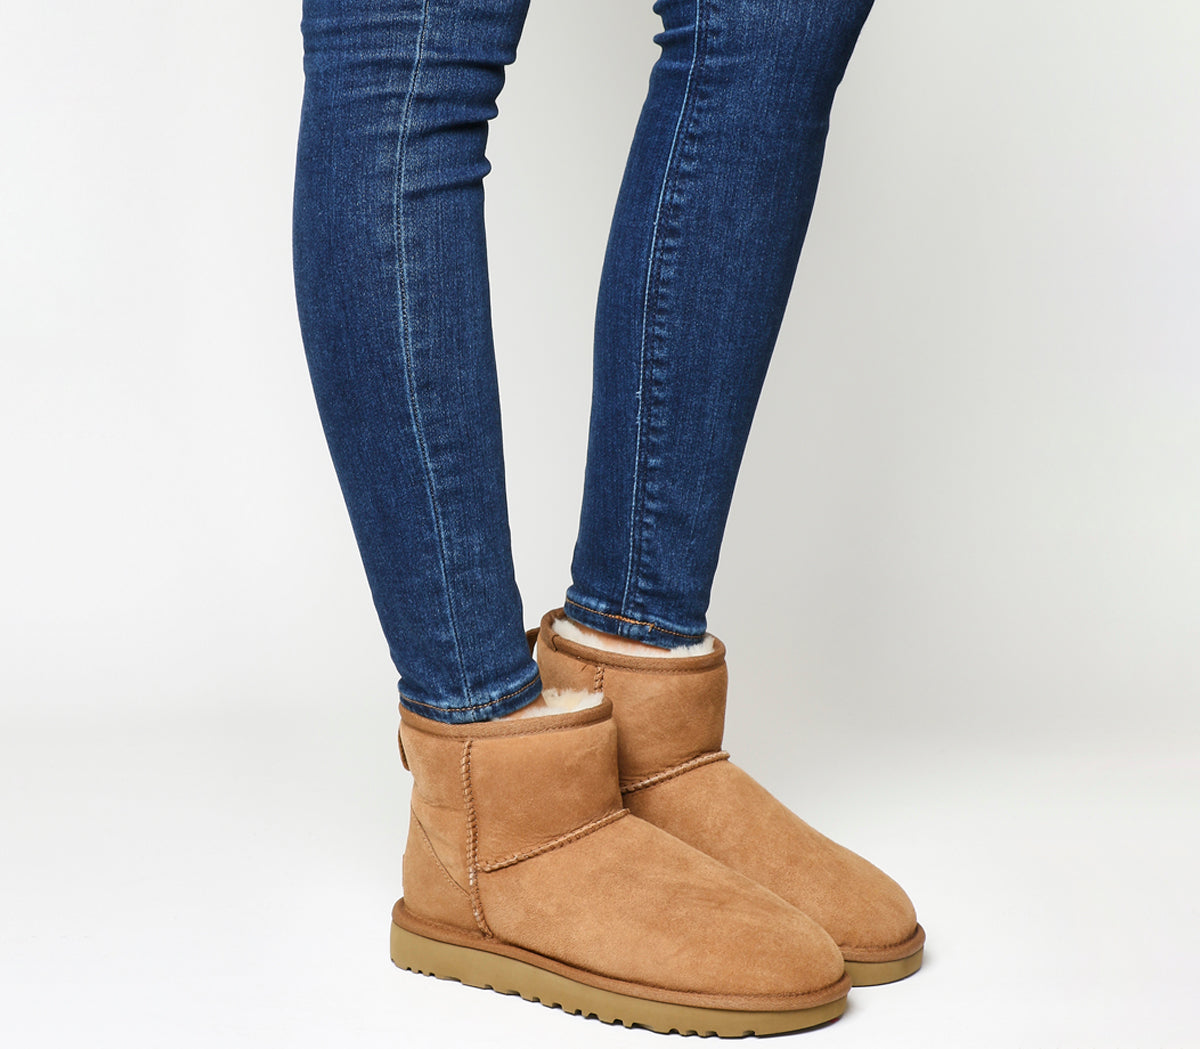 ca307fc5a3ea Womens Ugg Classic Mini II Chestnut Suede Boots – OFFCUTS SHOES by OFFICE